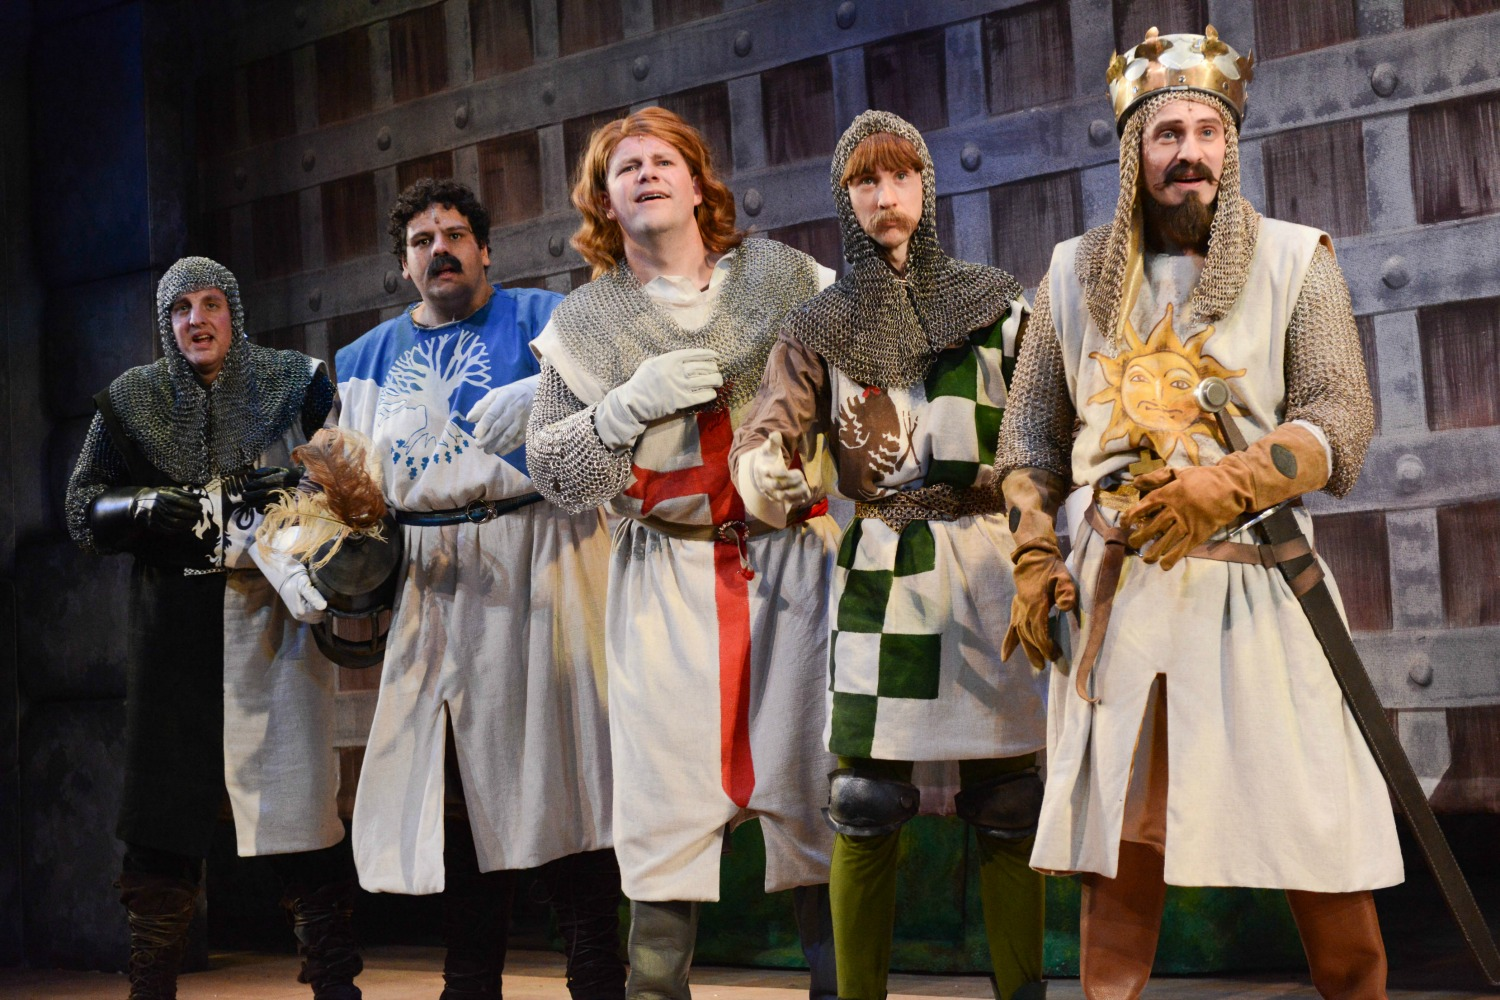 Knights of the round table monty python - The New Tour Is Produced By The Award Winning Selladoor Productions And Mercury Theatre Colchester Selladoor S Recent Tours Include Footloose